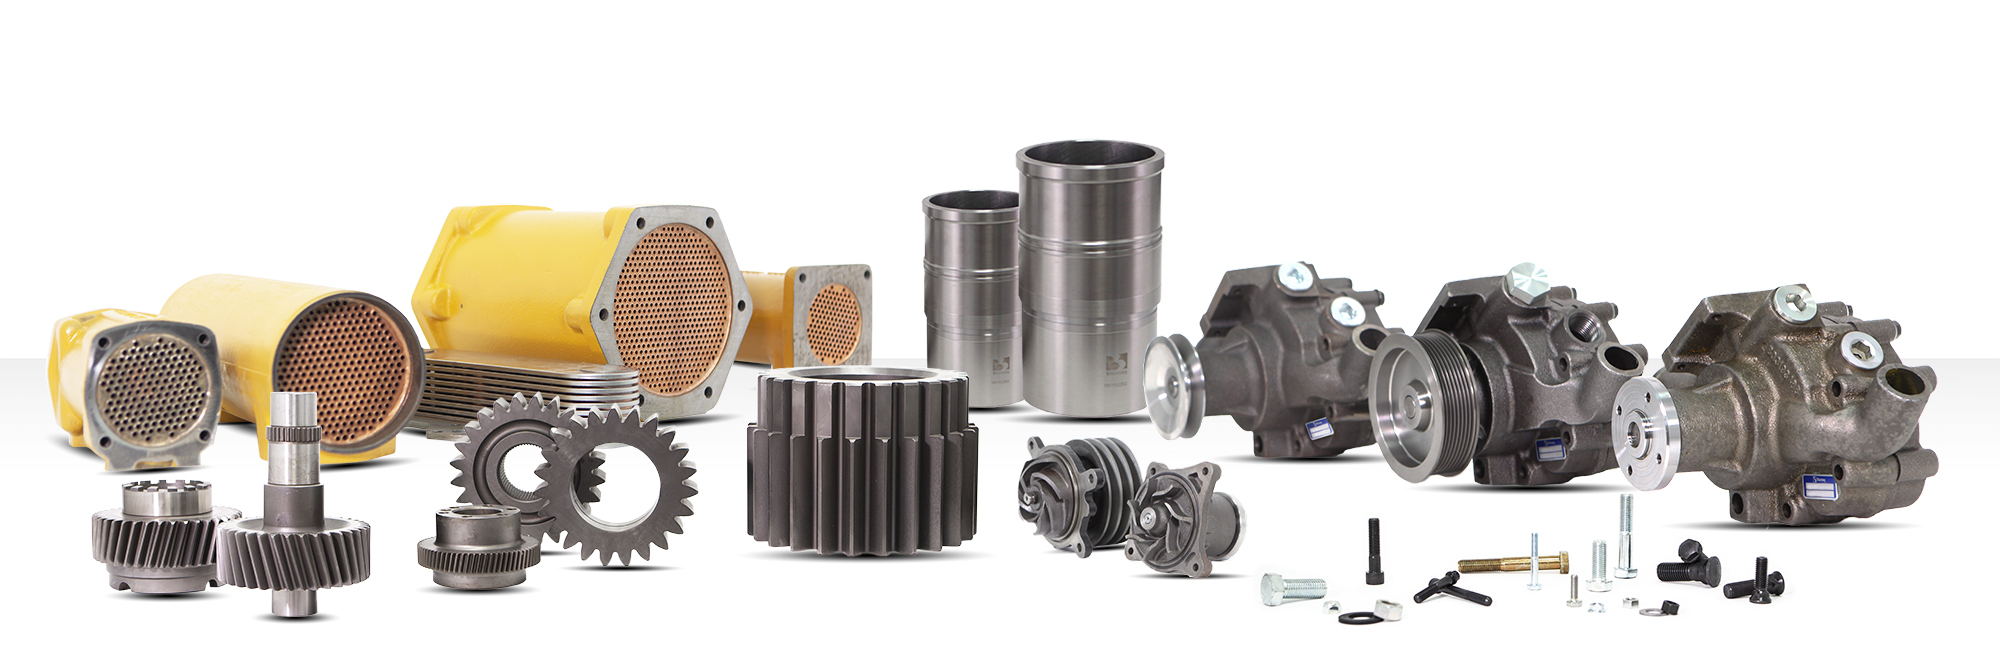 Case parts for machinery of public works, mining, marine engines, tractors.